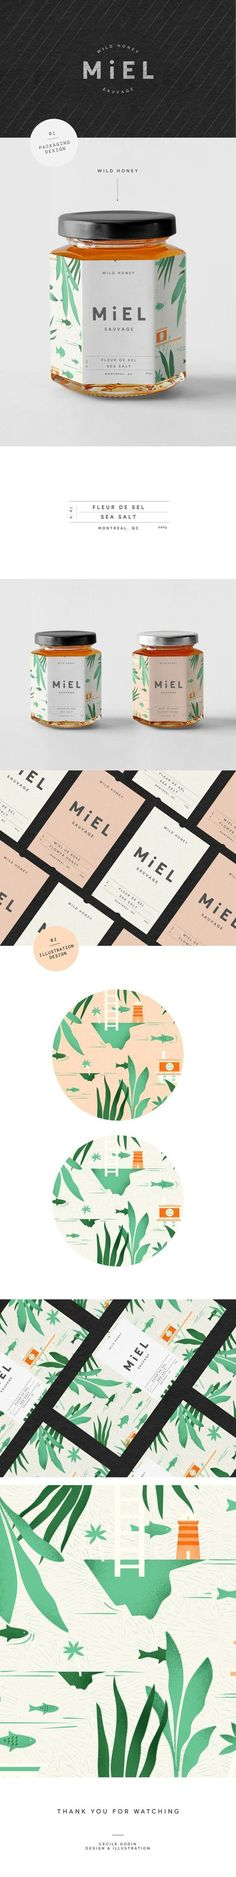 Miel Sauvage Wild Honey Branding and Packaging by Cecile Godin | Fivestar Branding Agency – Design and Branding Agency & Curated Inspiration Gallery